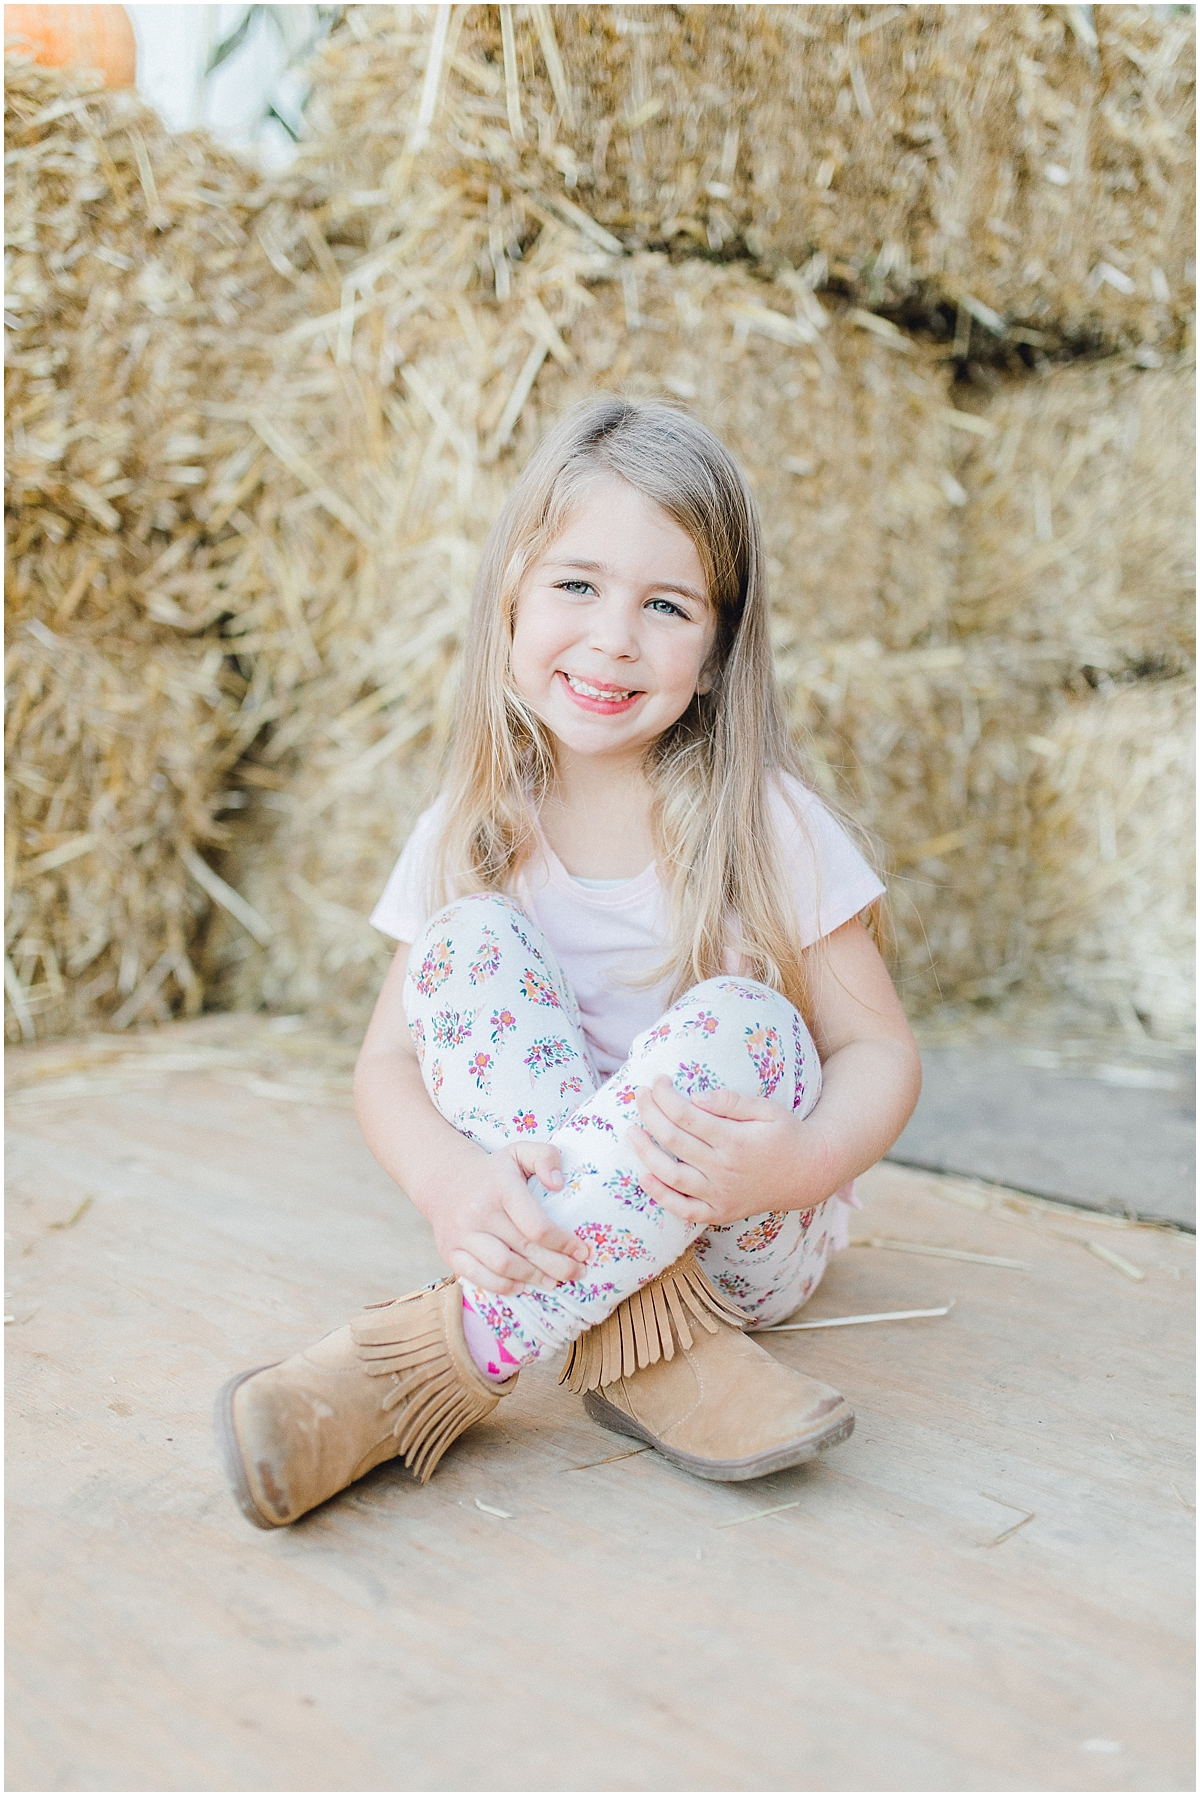 Pumpkin Patch Photo Shoot With Toddler and Mommy | Emma Rose Company Seattle Portland Light and Airy Wedding Photographer | Kindred Presets | Film_0002.jpg